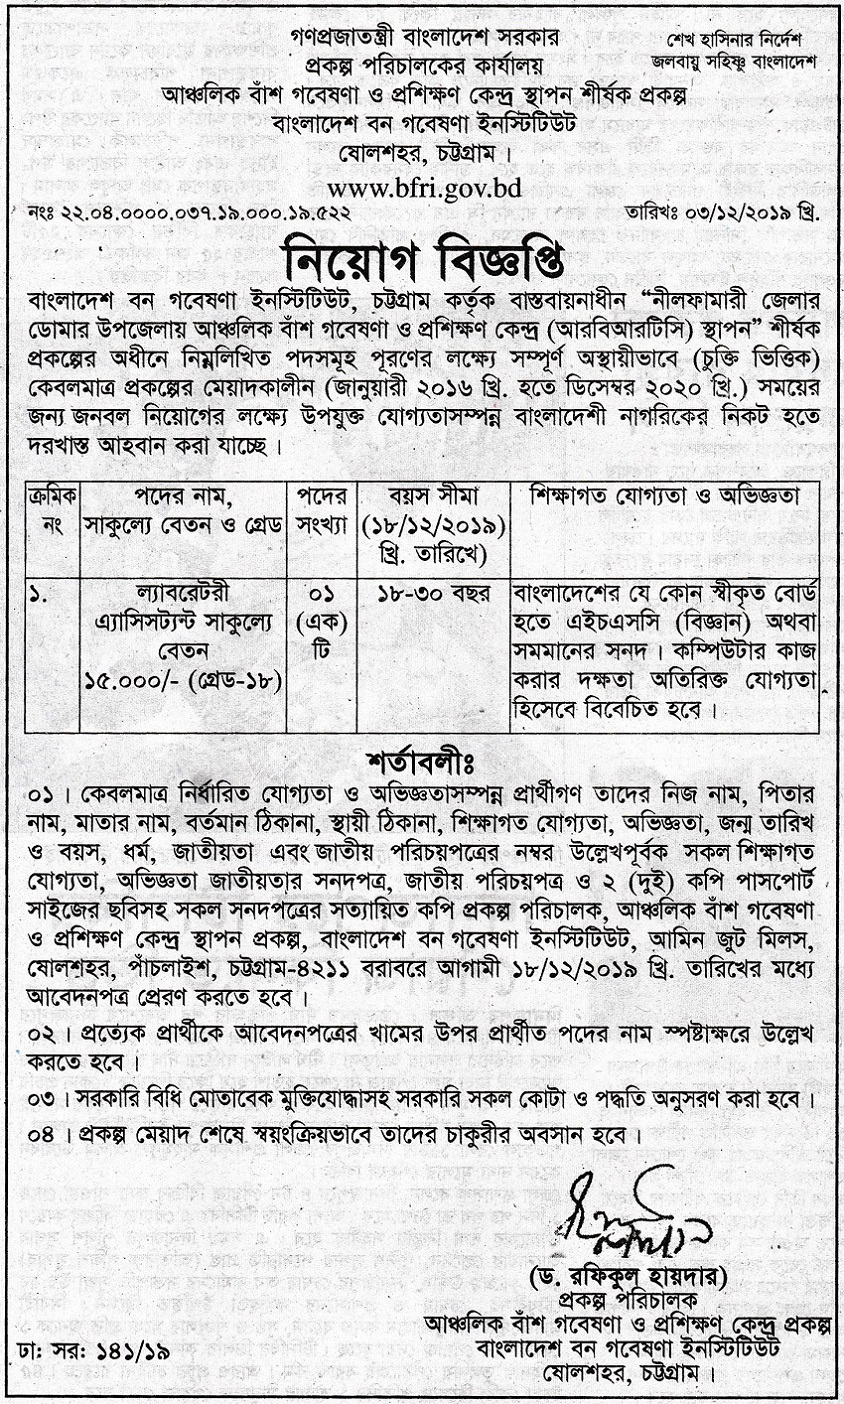 Bangladesh Forest Research Institute Job Circular 2019